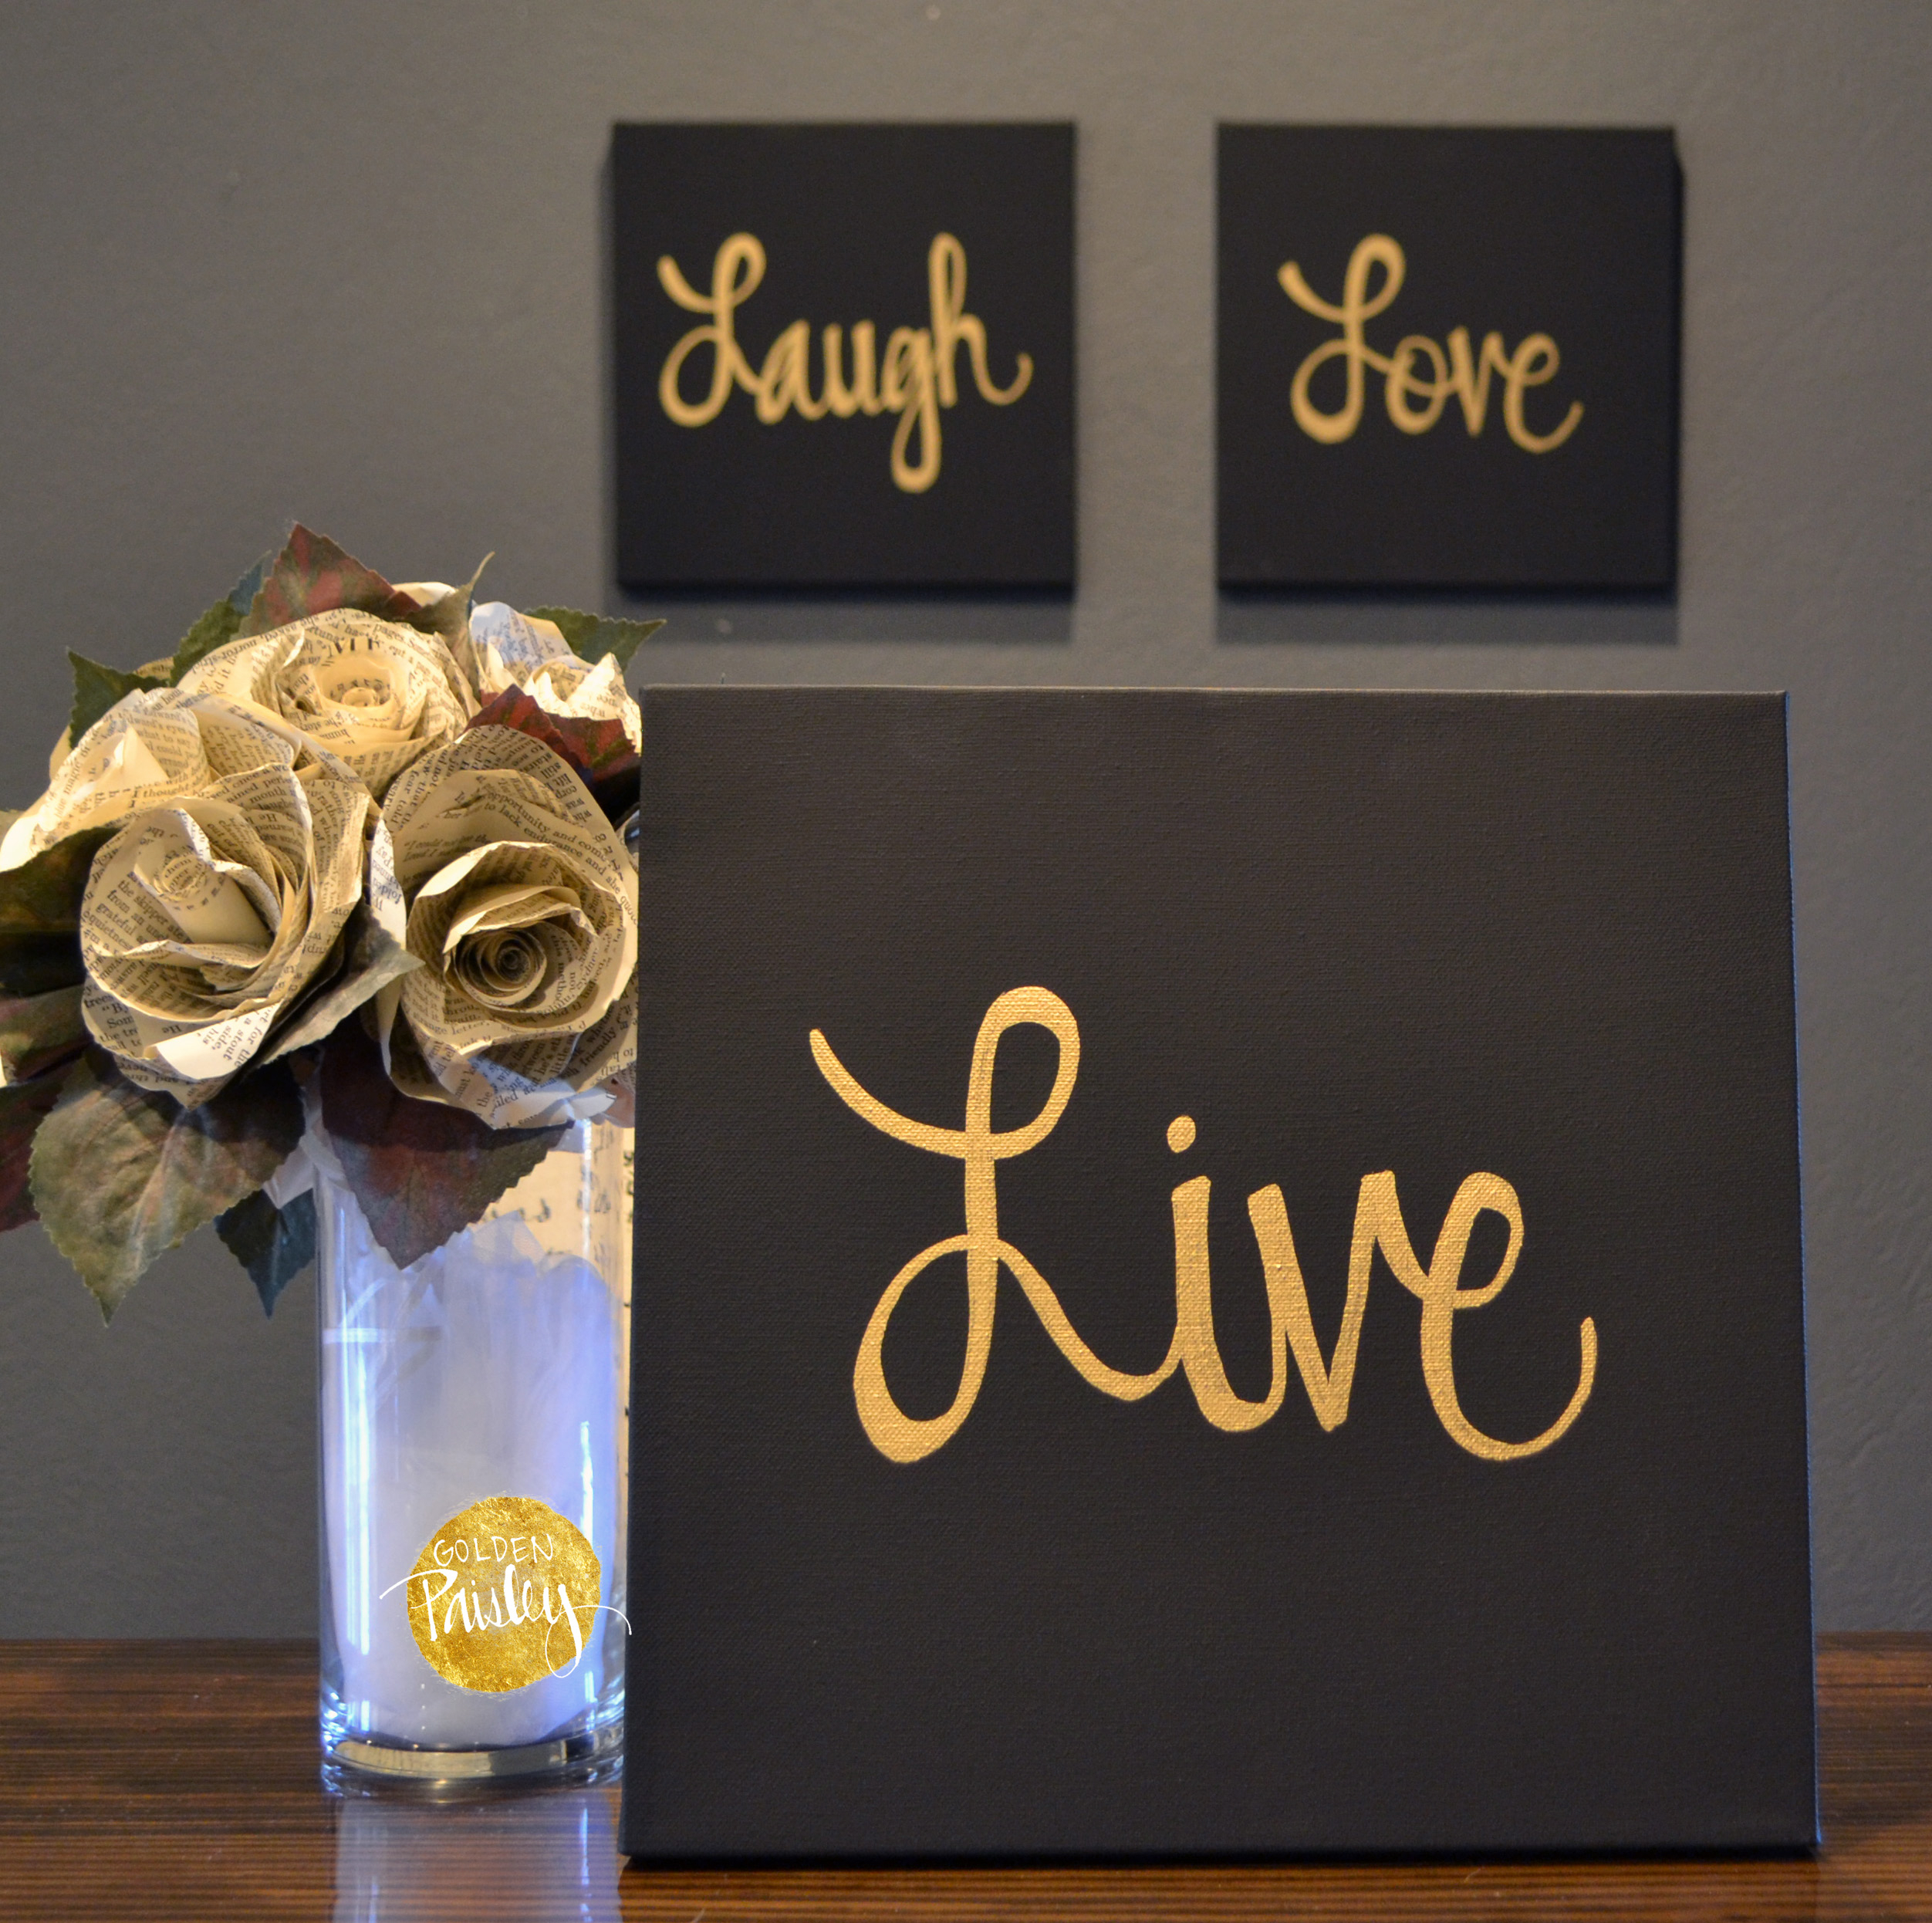 Live Love Laugh 3 Piece Black Wall Decor Sets Throughout Most Recent Live Laugh Love Black & Gold 3 Piece Wall Decor Set (View 2 of 20)